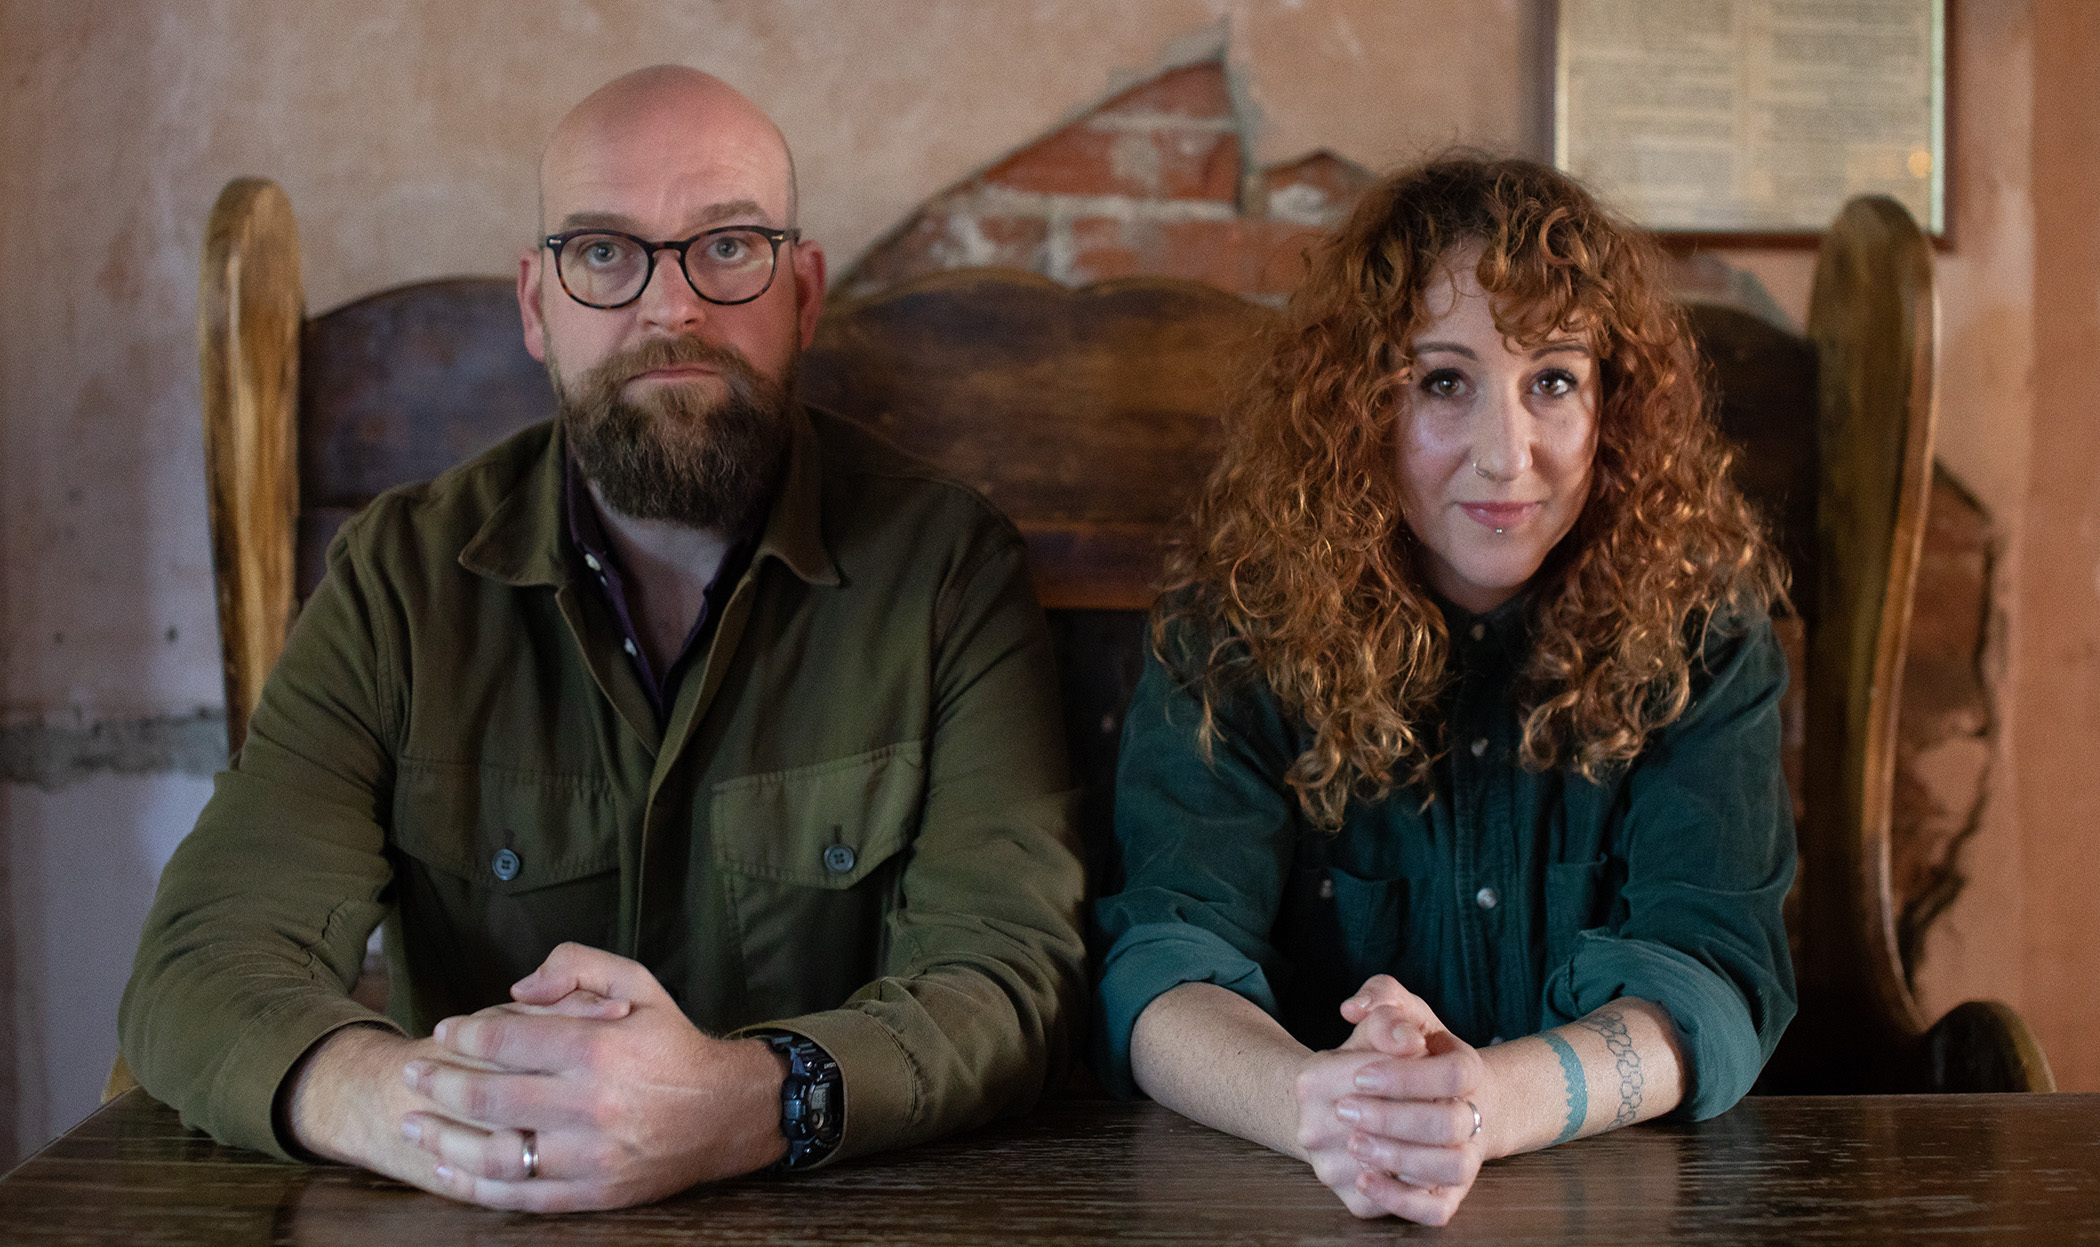 Findlay Napier and Megan Henwood